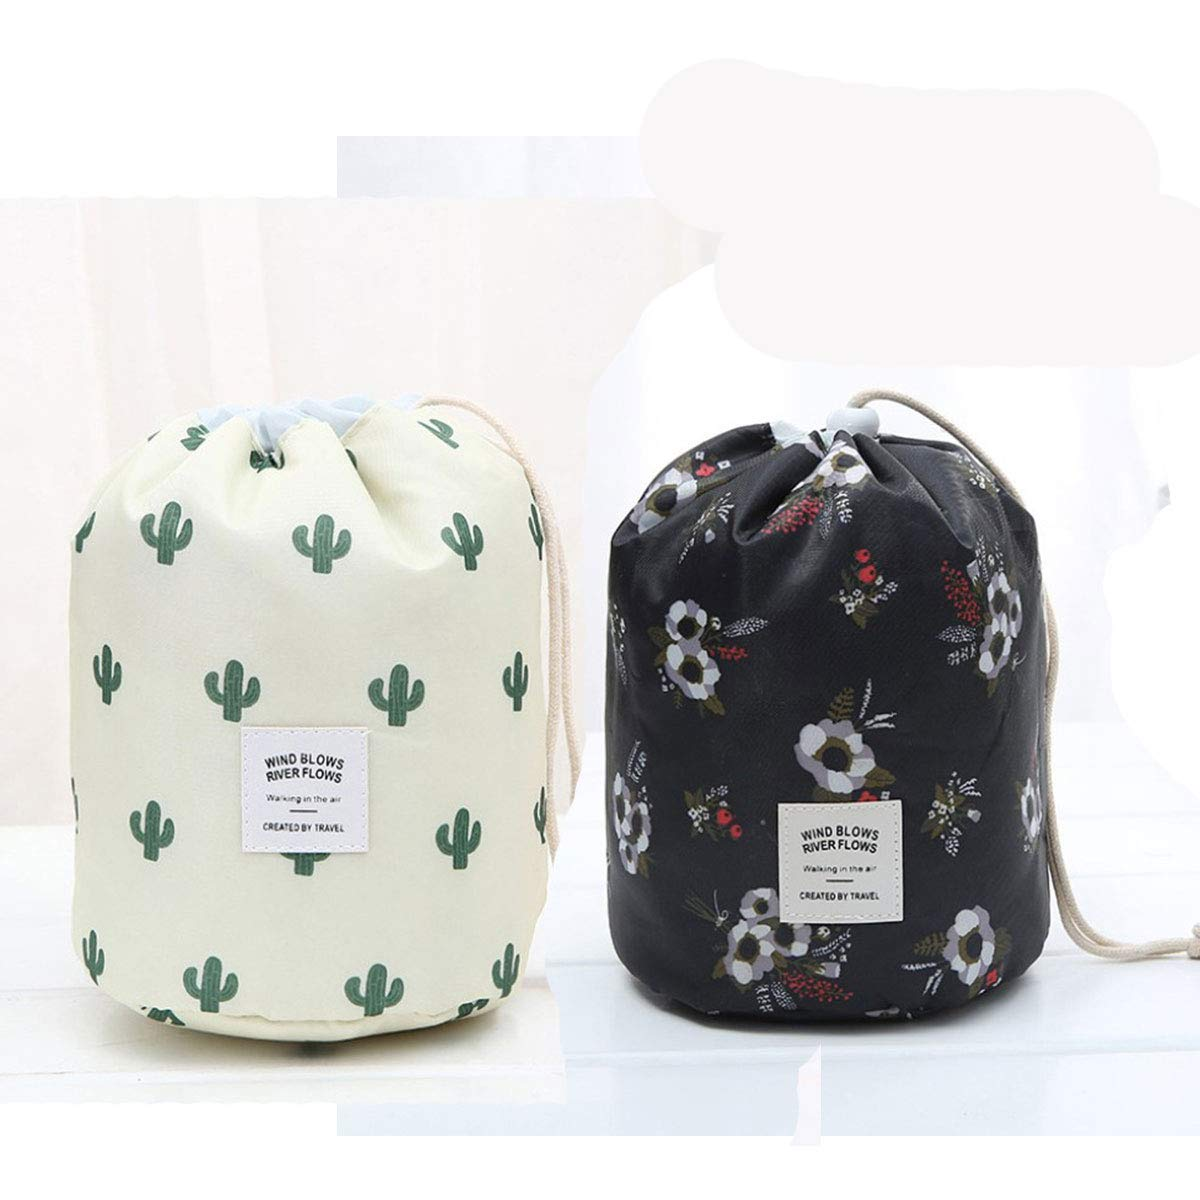 UpOne Barrel Makeup Bags, Travel Large Capacity Waterproof Portable Fashion Drawstring Cosmetic Toiletry Bag(Bag Only), Pack of 2 (Flower + Cactus)